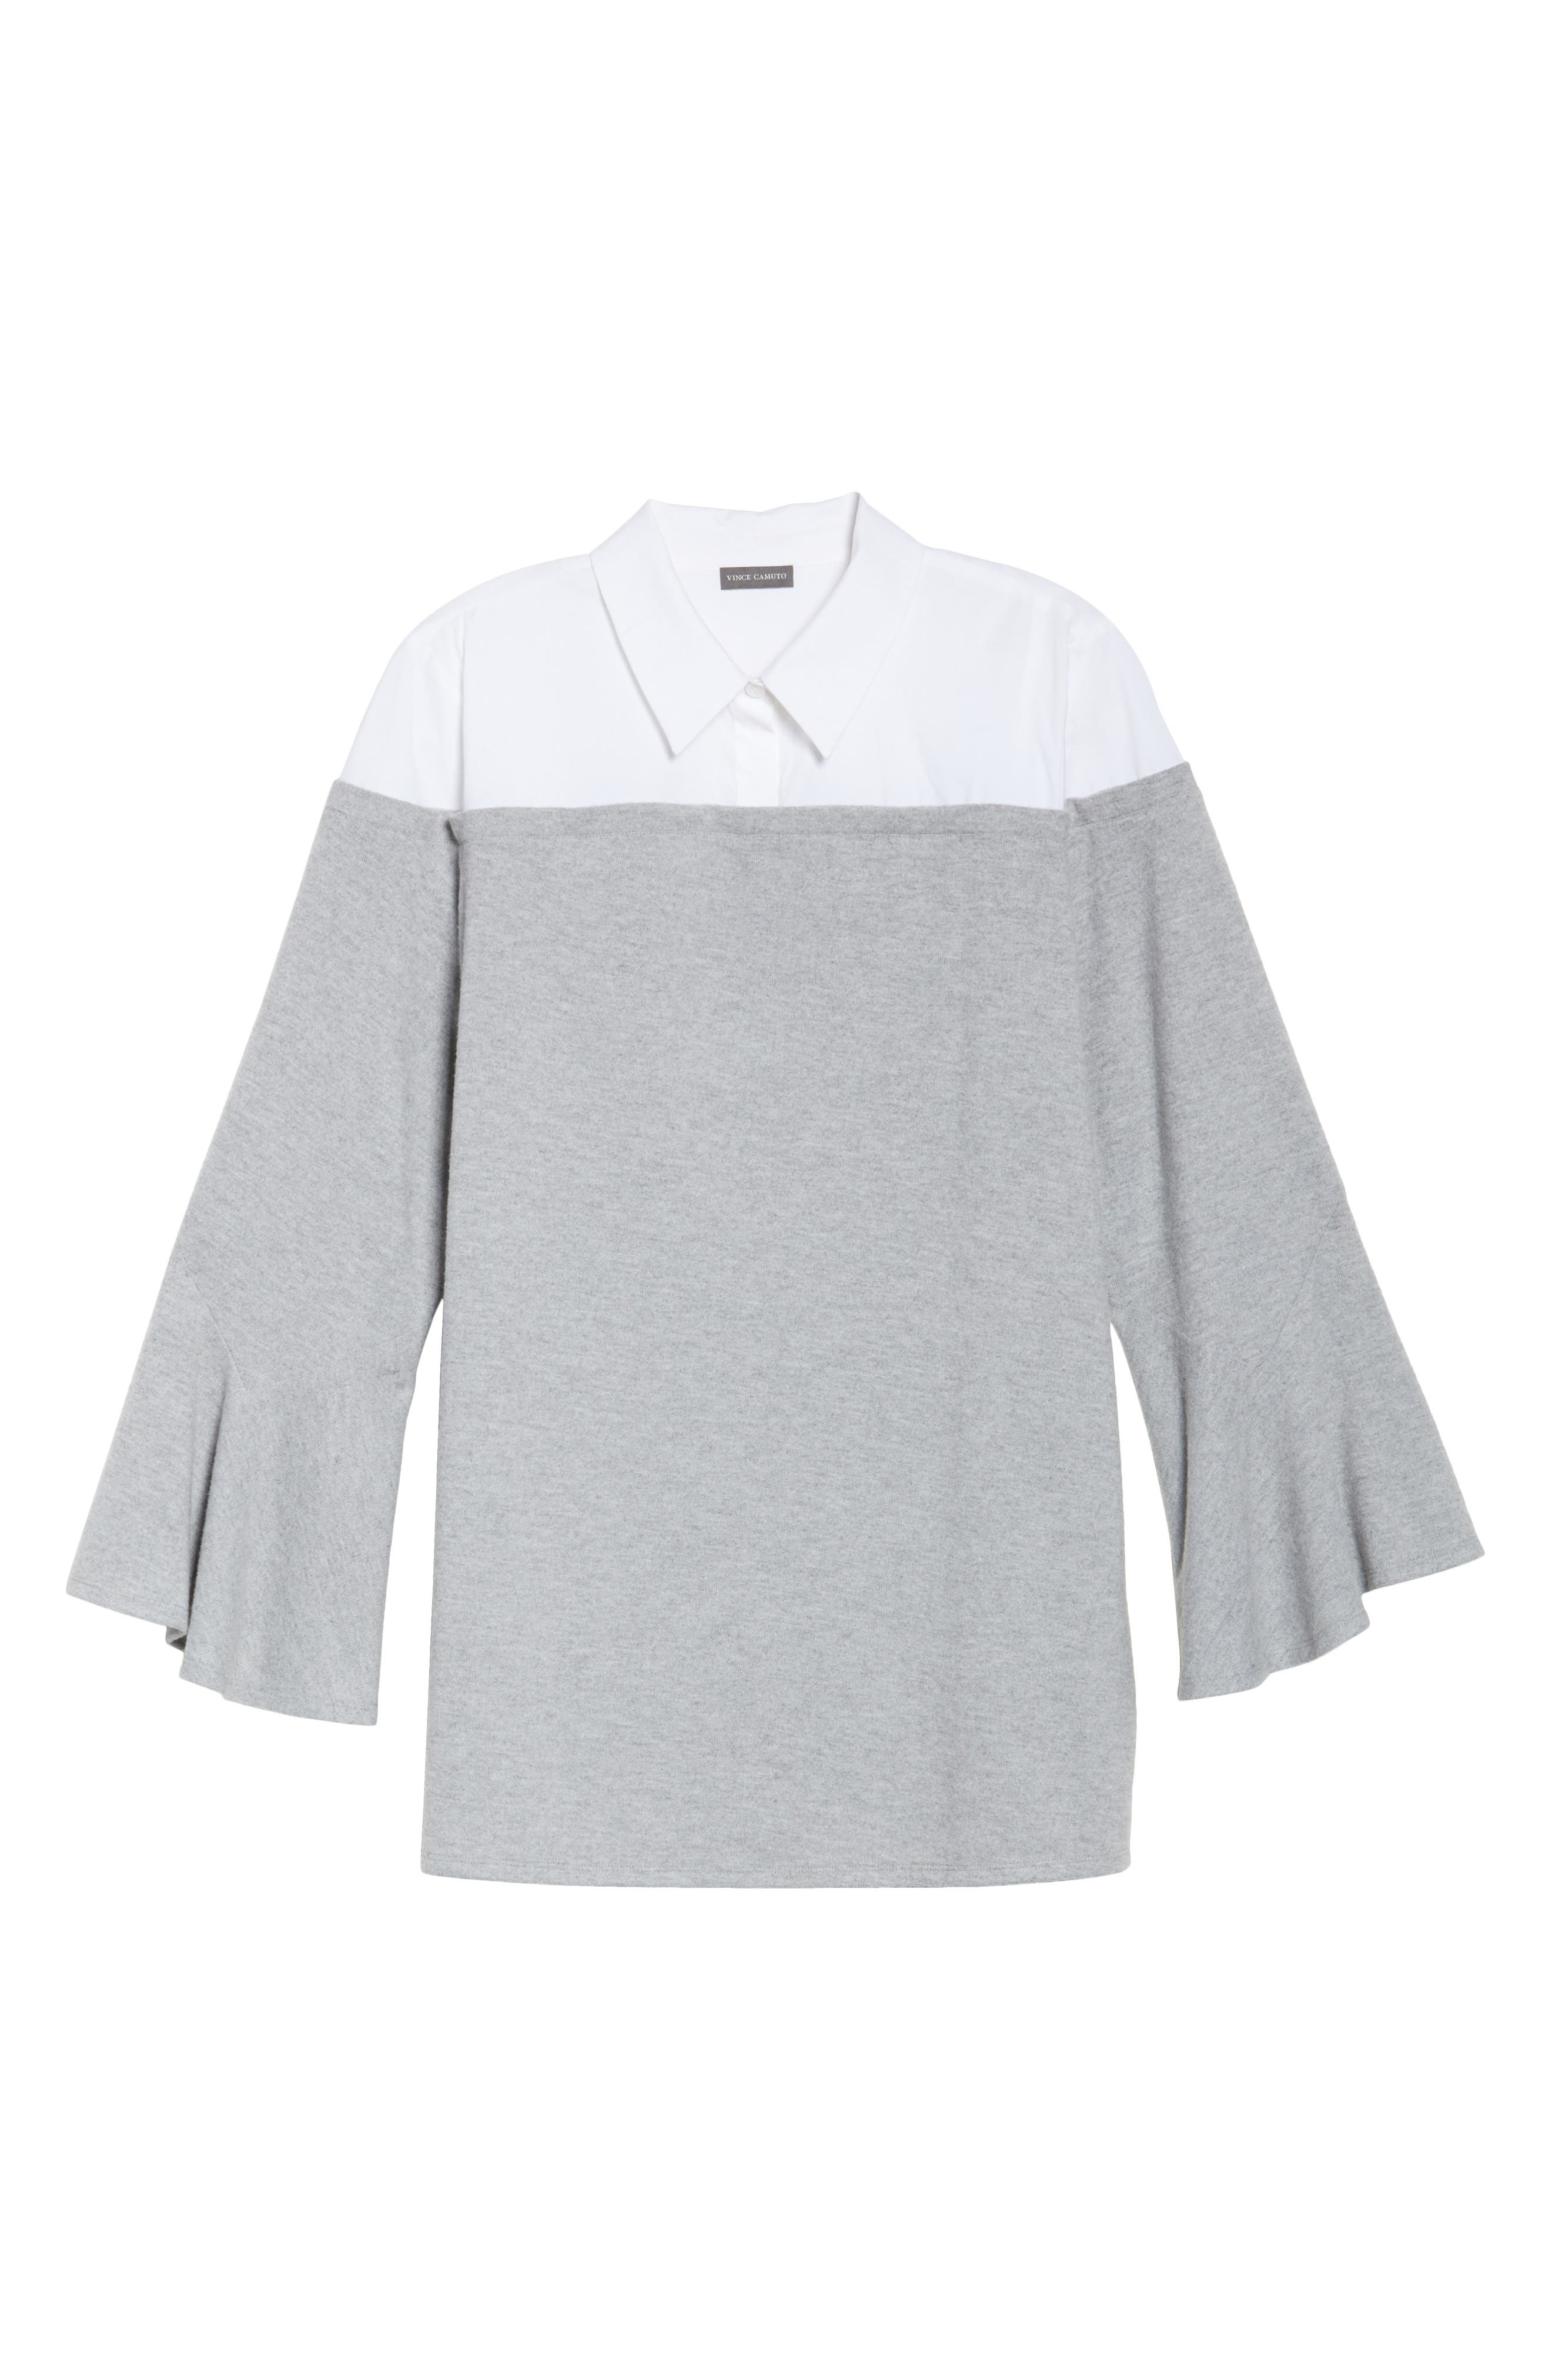 Bell Sleeve Mixed Media Top,                             Alternate thumbnail 6, color,                             Light Heather Grey